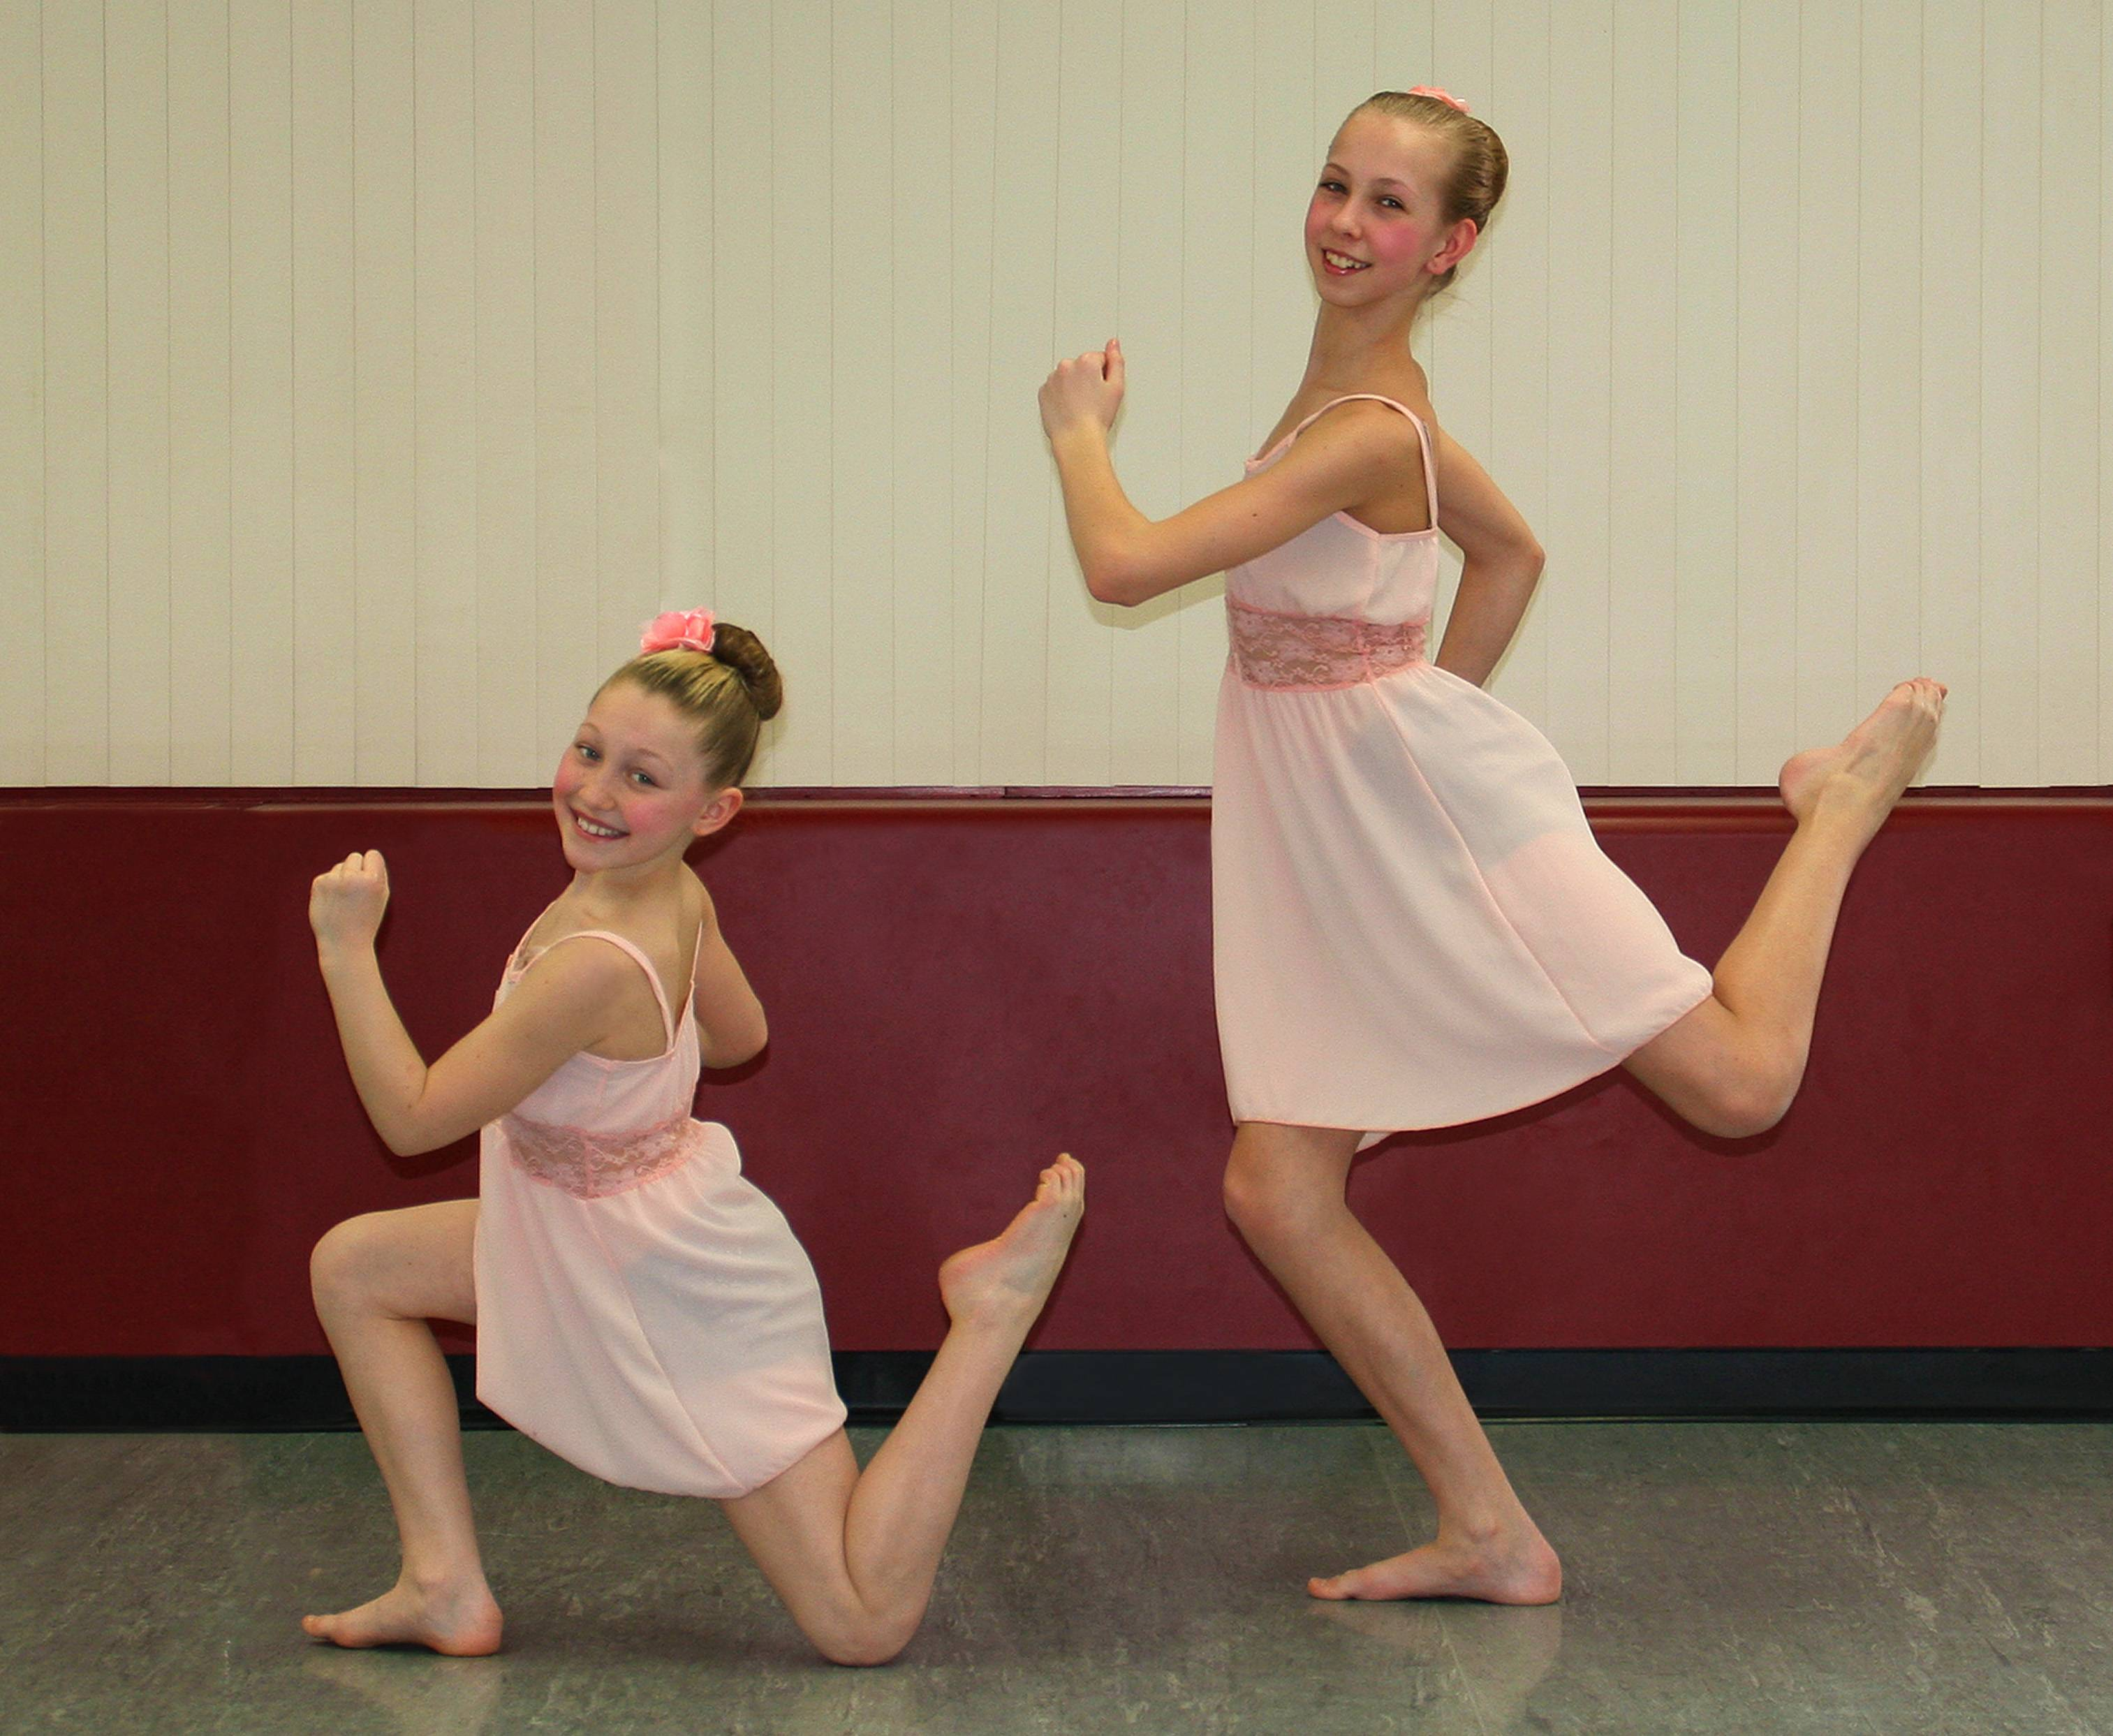 The Light, a duet performed by Jordin Suwalski (left) and Sammy Kedziora, was awarded the Overall High Score in the Duo/Trio category, as well as the Overall High Score in the entire Primary/Junior division.Lisa Haring